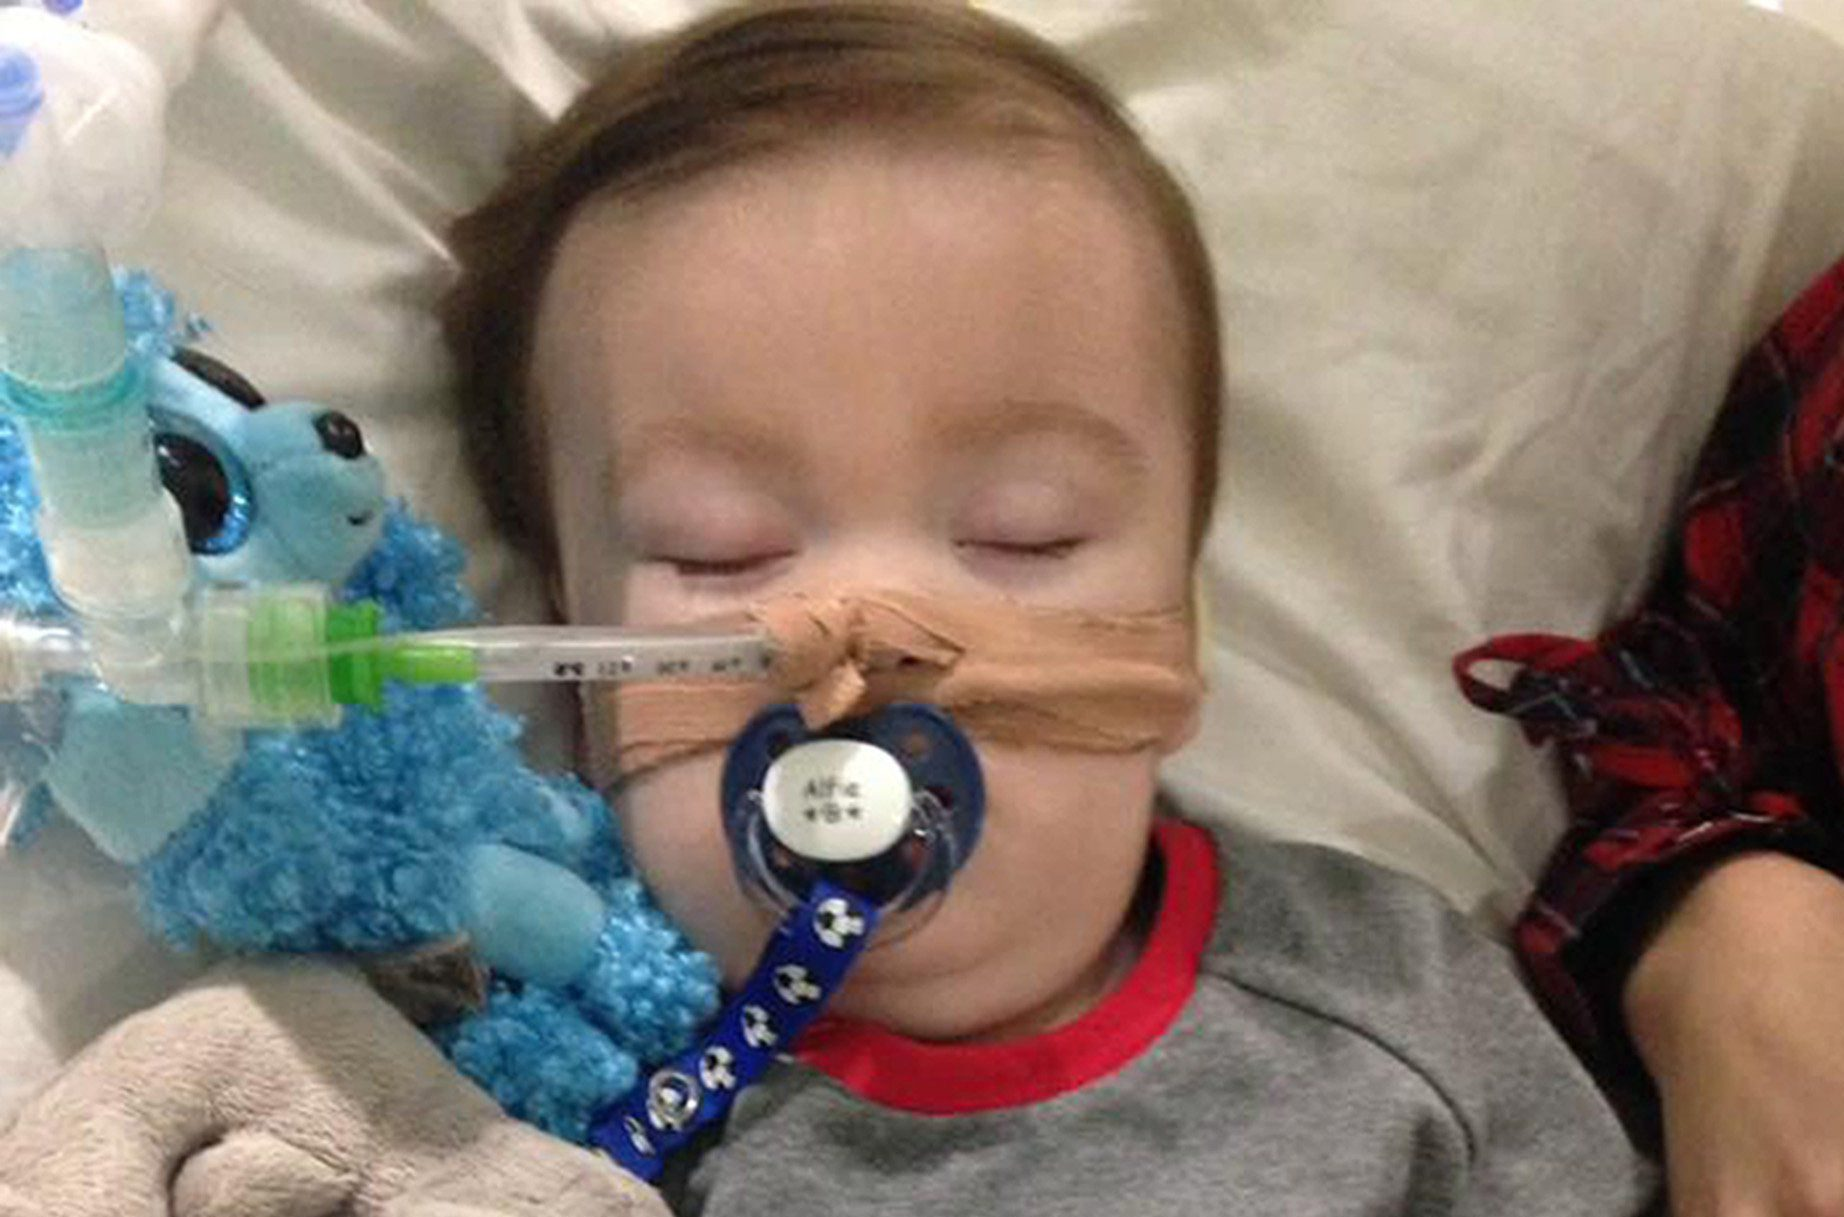 Undated family handout file photo taken with with permission from the Alfies Army Official facebook page of brain-damaged boy Alfie Evans, as his parents Tom Evans and Kate James are at the centre of a life-support treatment battle.The couple who are in their 20s and from Liverpool, have lost fights over their son Alfie Evans in the High Court, Court of Appeal, Supreme Court and European Court of Human Rights and are seeking to overturn a series of rulings and want their child treated in Germany or Rome. PRESS ASSOCIATION Photo. Issue date: Wednesday April 11, 2018. See PA story COURTS Alfie. Photo credit should read: Alfies Army Official/PA Wire NOTE TO EDITORS: This handout photo may only be used in for editorial reporting purposes for the contemporaneous illustration of events, things or the people in the image or facts mentioned in the caption. Reuse of the picture may require further permission from the copyright holder.